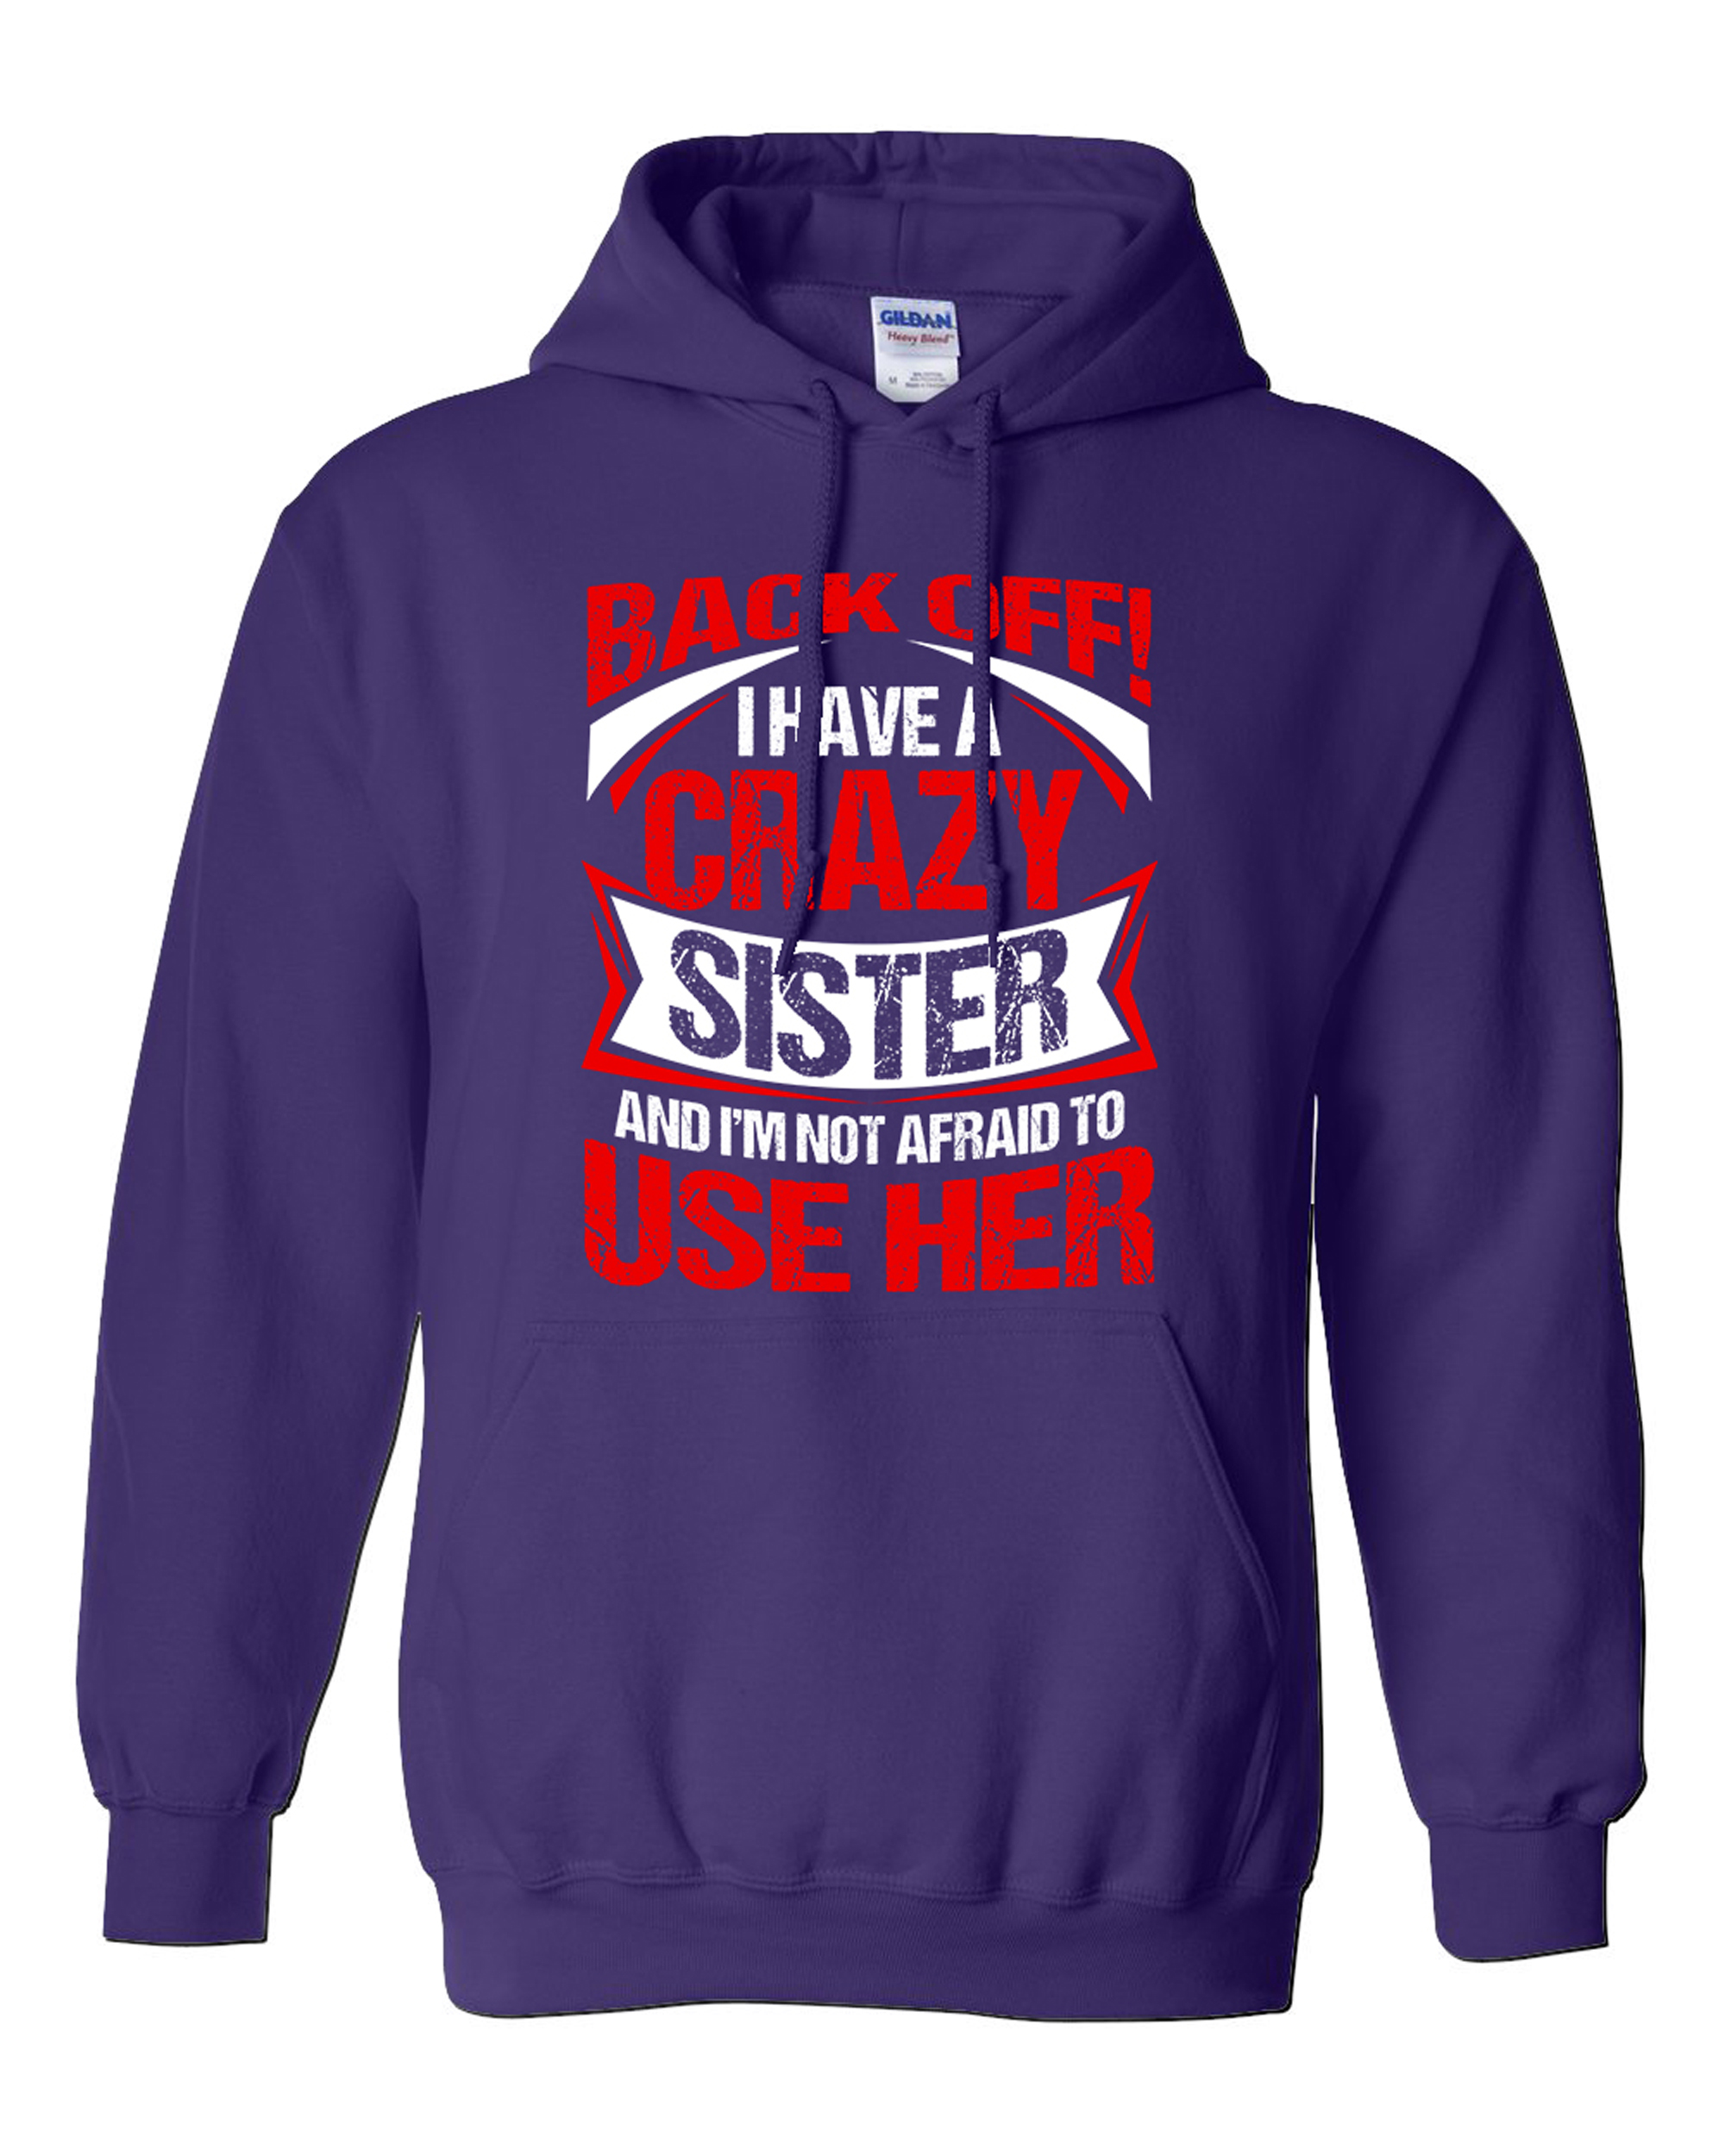 Back Off I Have A Crazy Sister I'm Not Afraid To Use Her DT Sweatshirt Hoodie